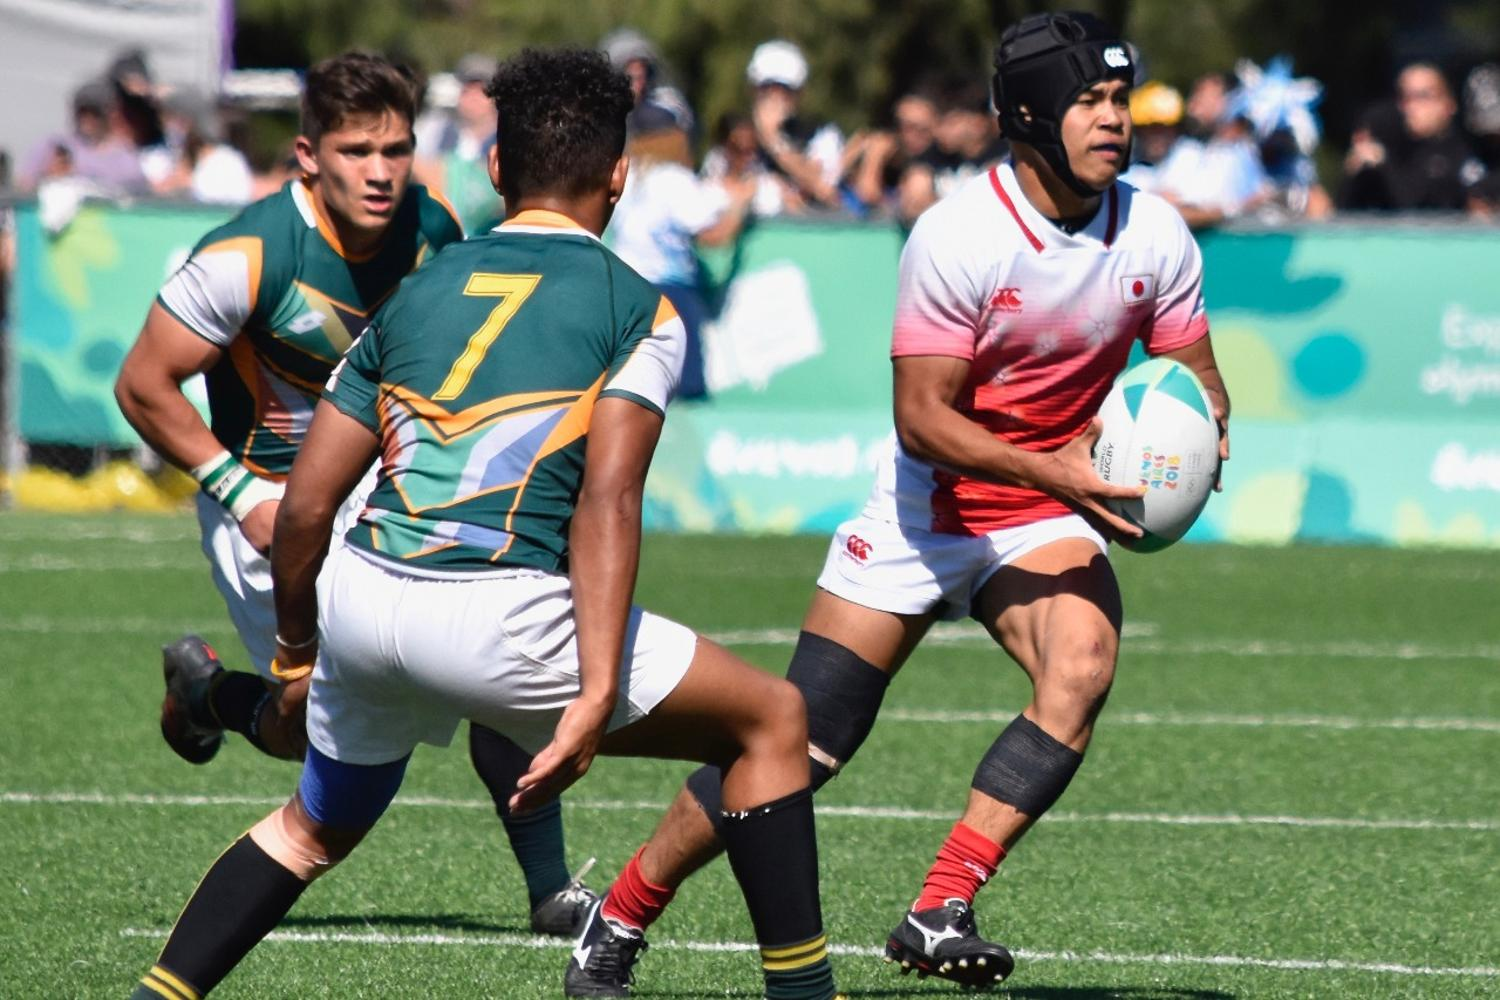 Japan v South Africa - Youth Olympic Games 2018